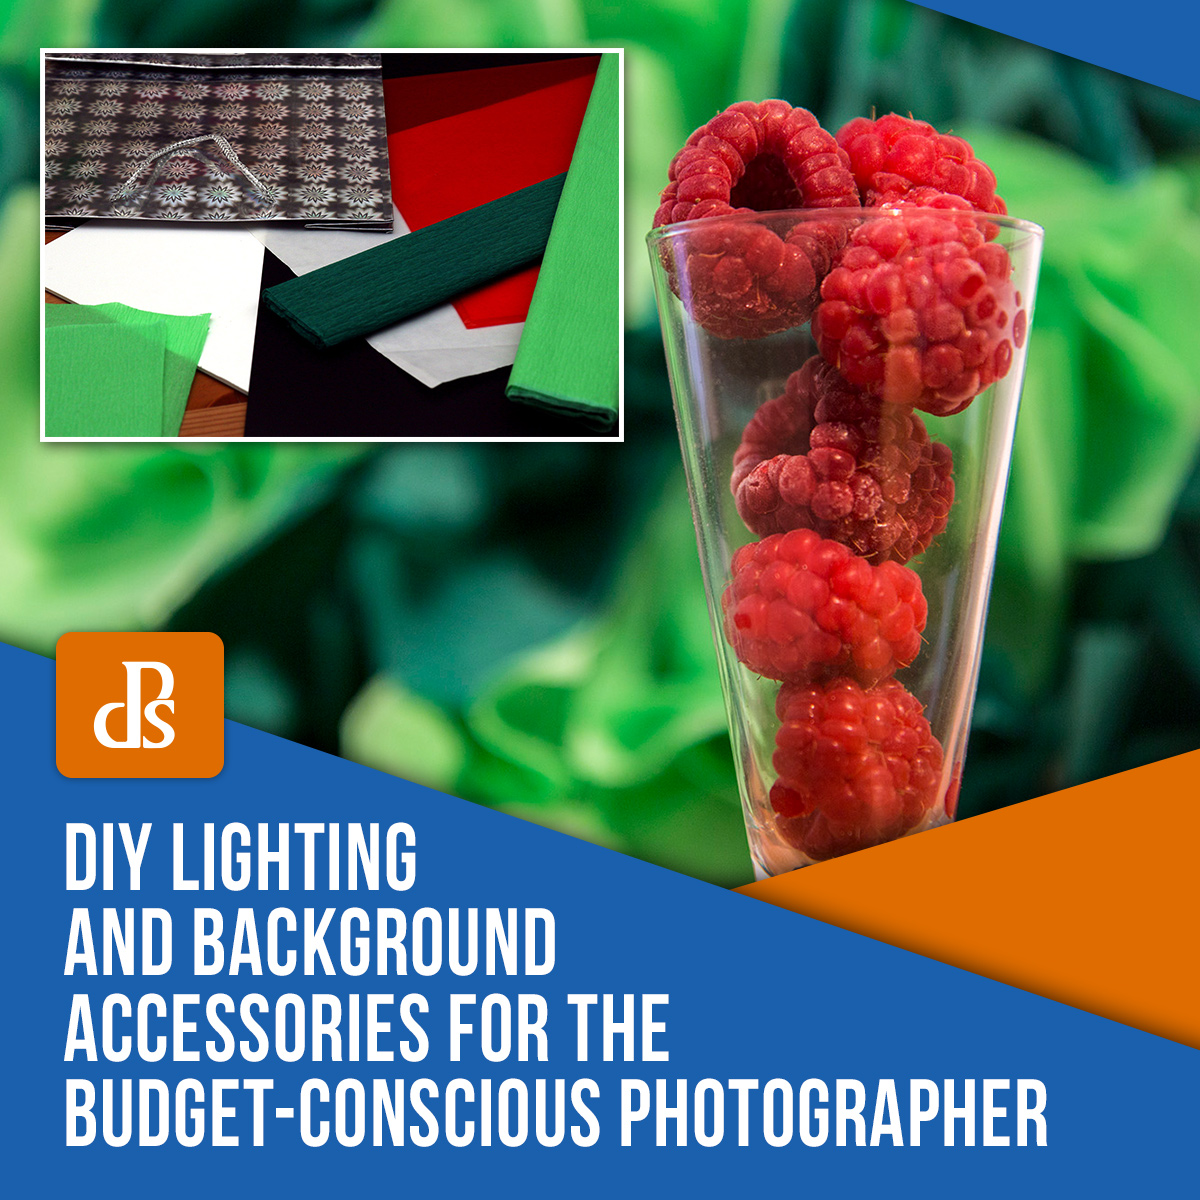 diy-lighting-and-background-accessories